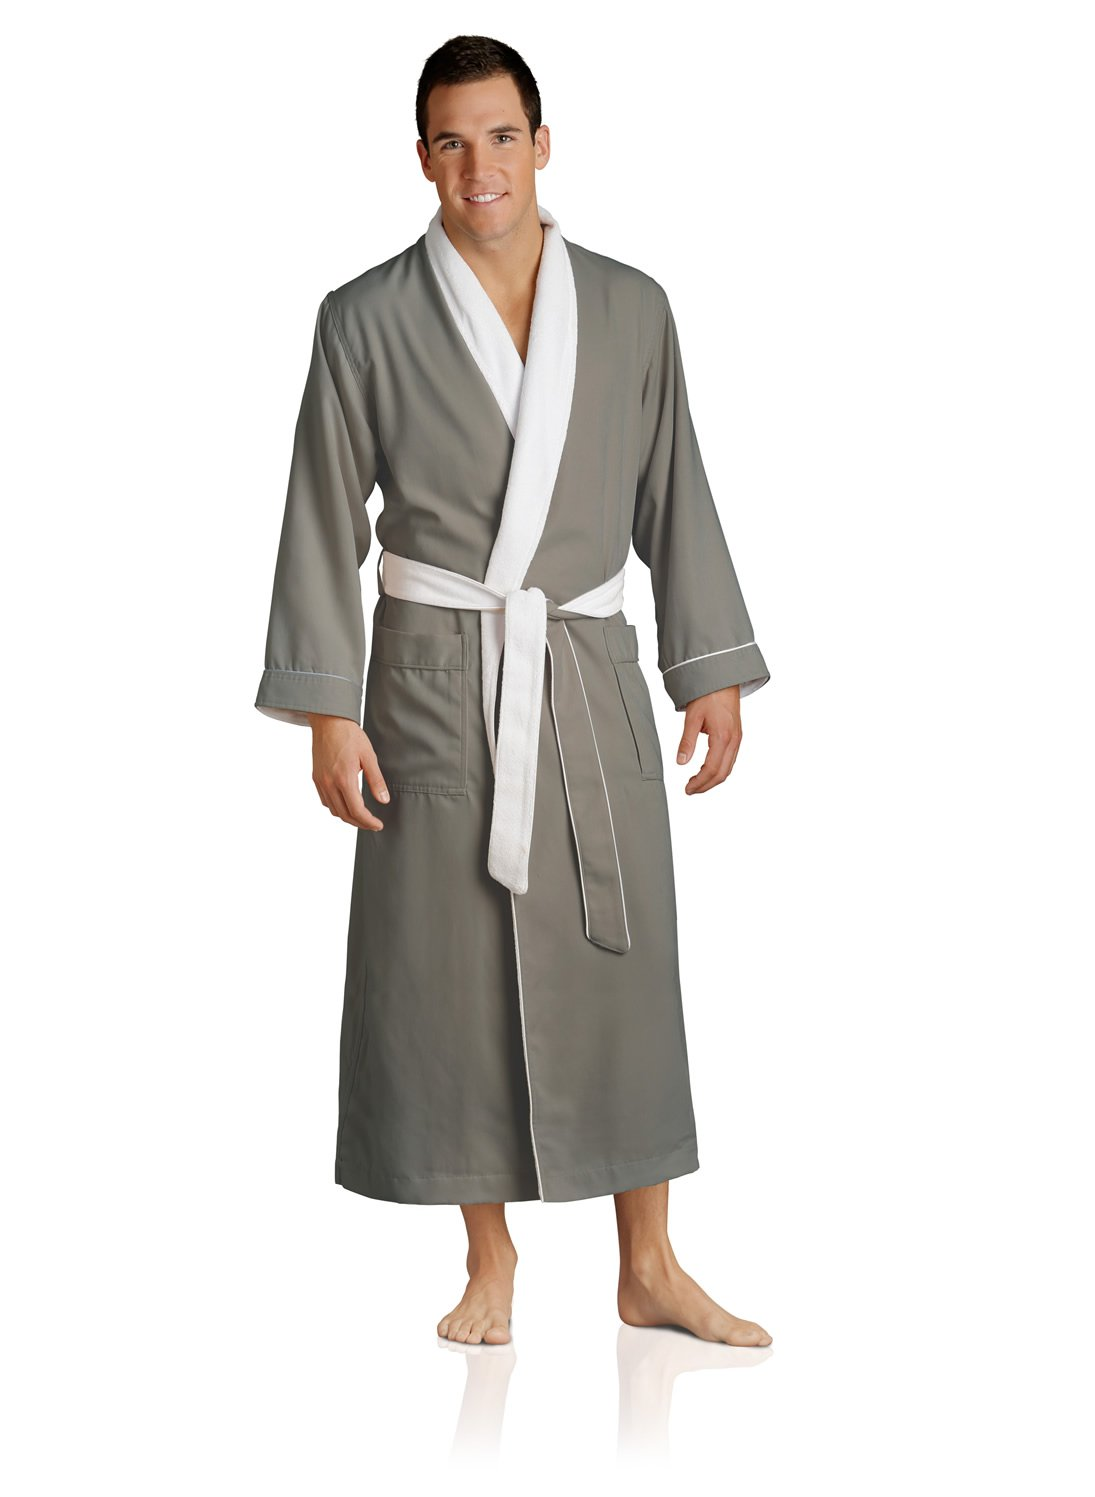 Luxury Spa Robe - Microfiber with Cotton Terry Lining, Sandstone, XX-Large